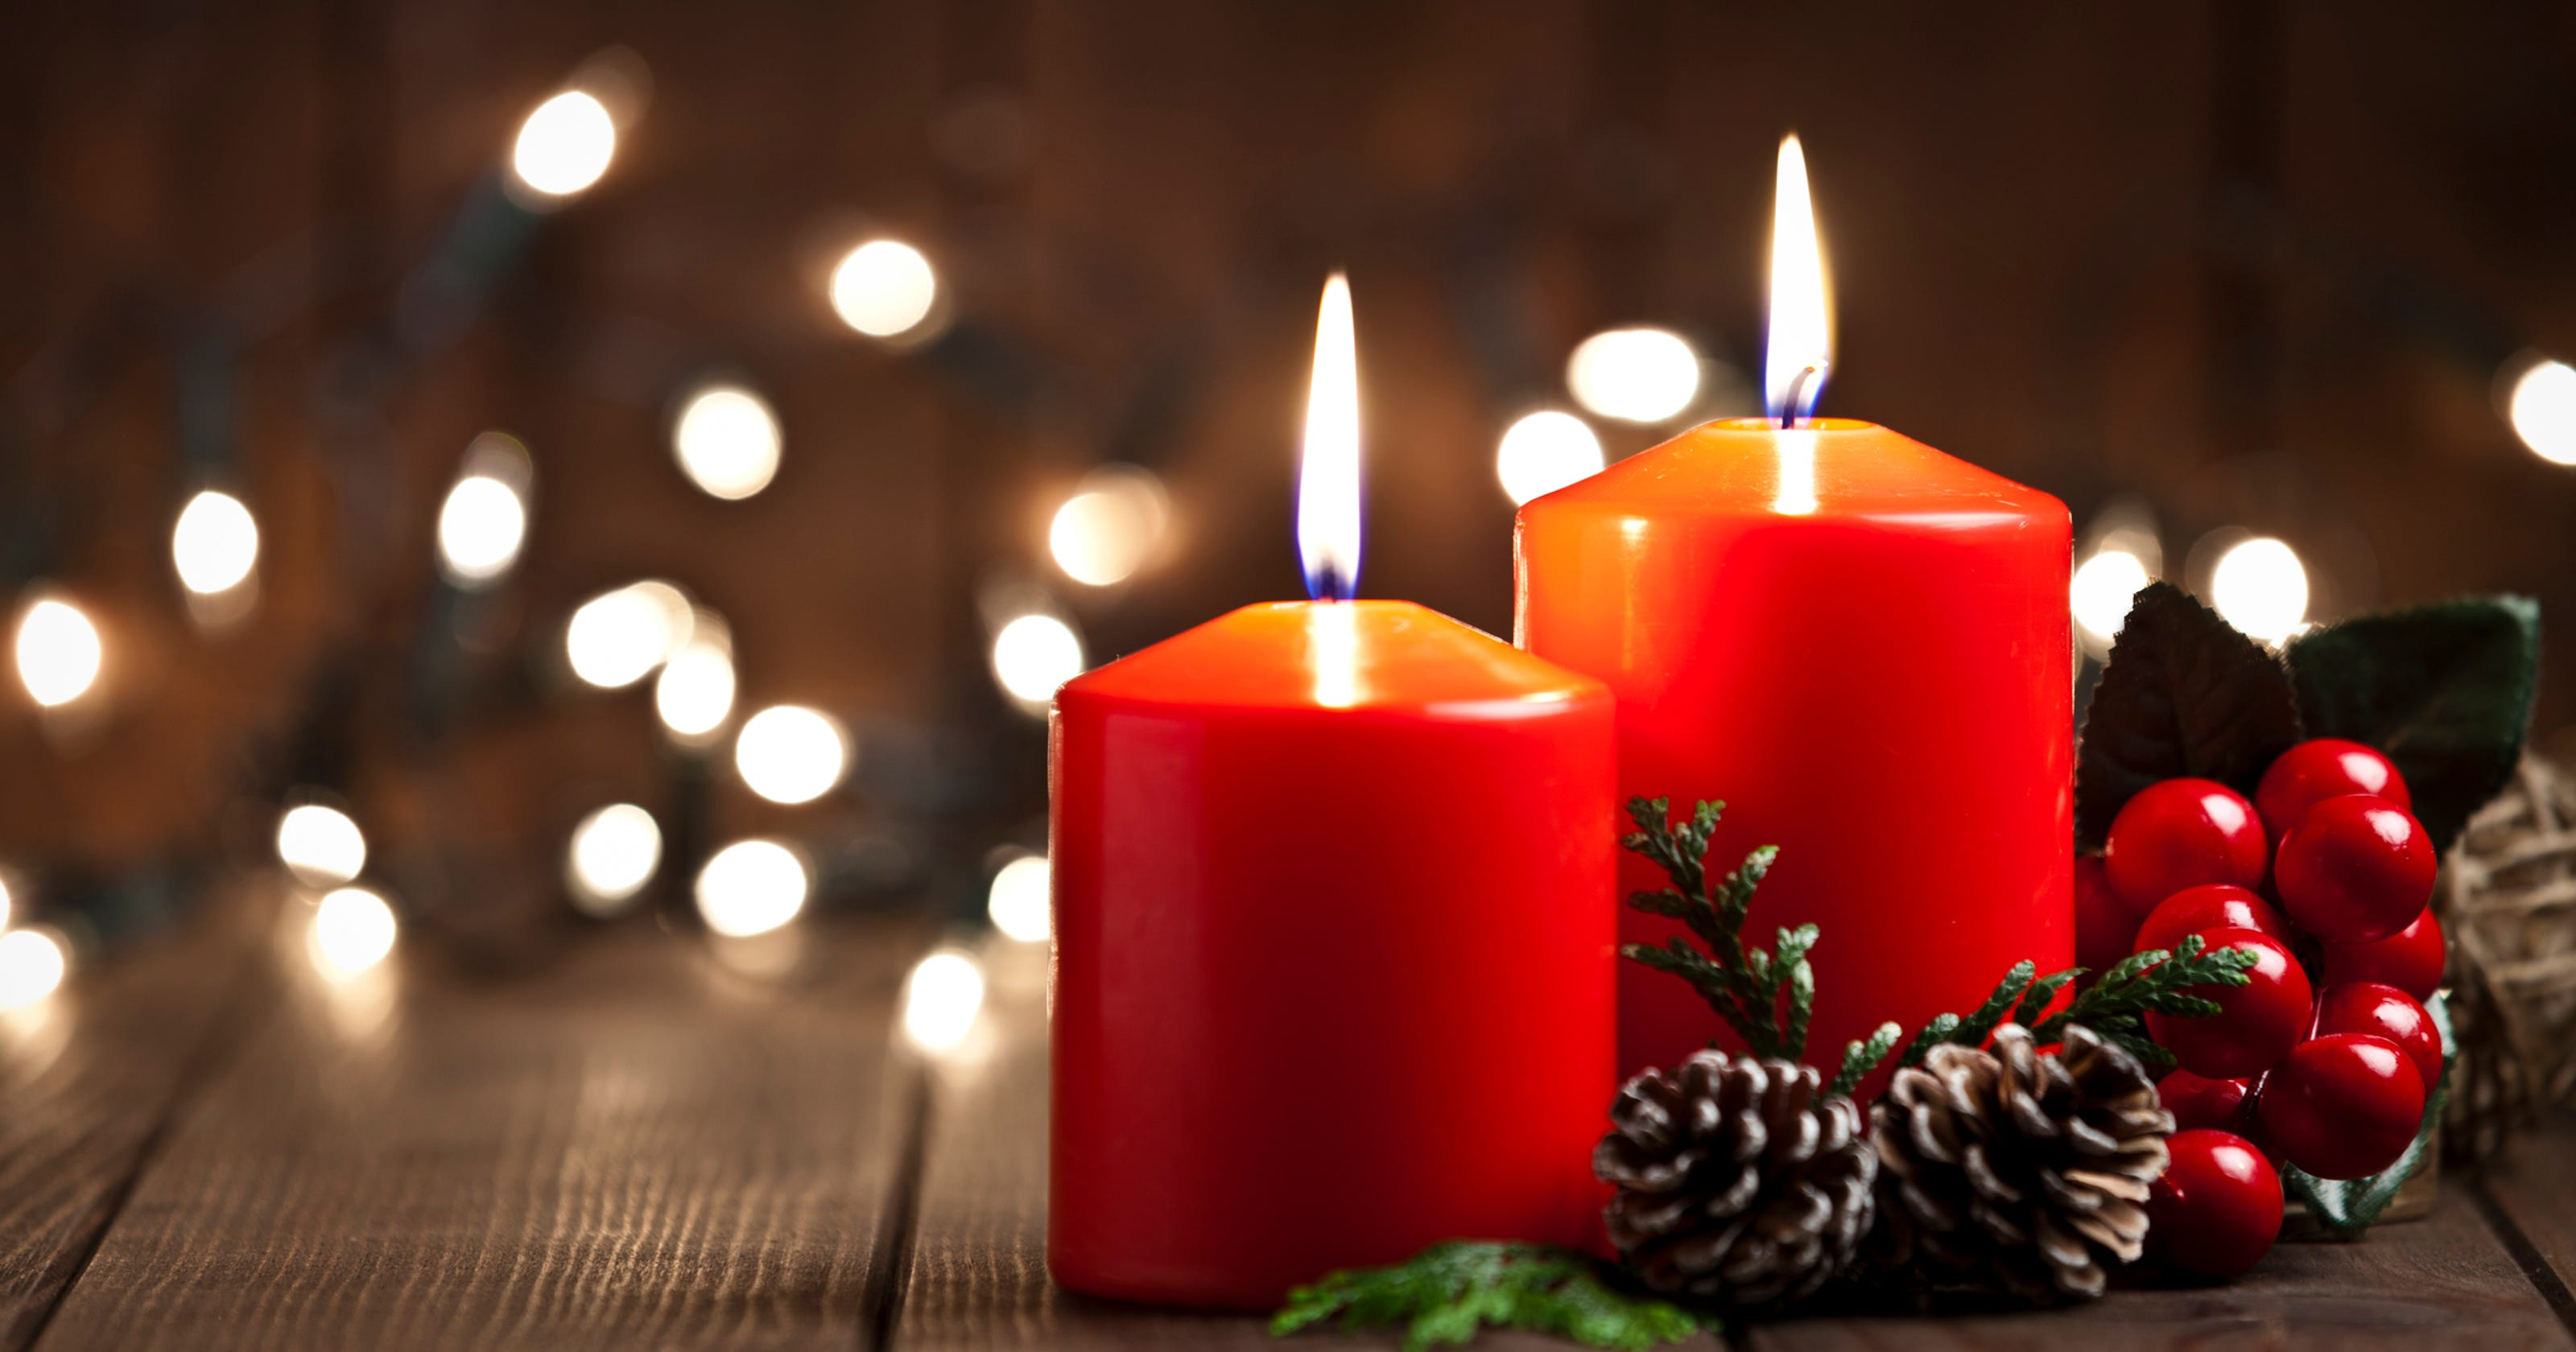 Christmas Eve Services Near Me.Churches In Murfreesboro Smyrna Host Christmas Worship Services